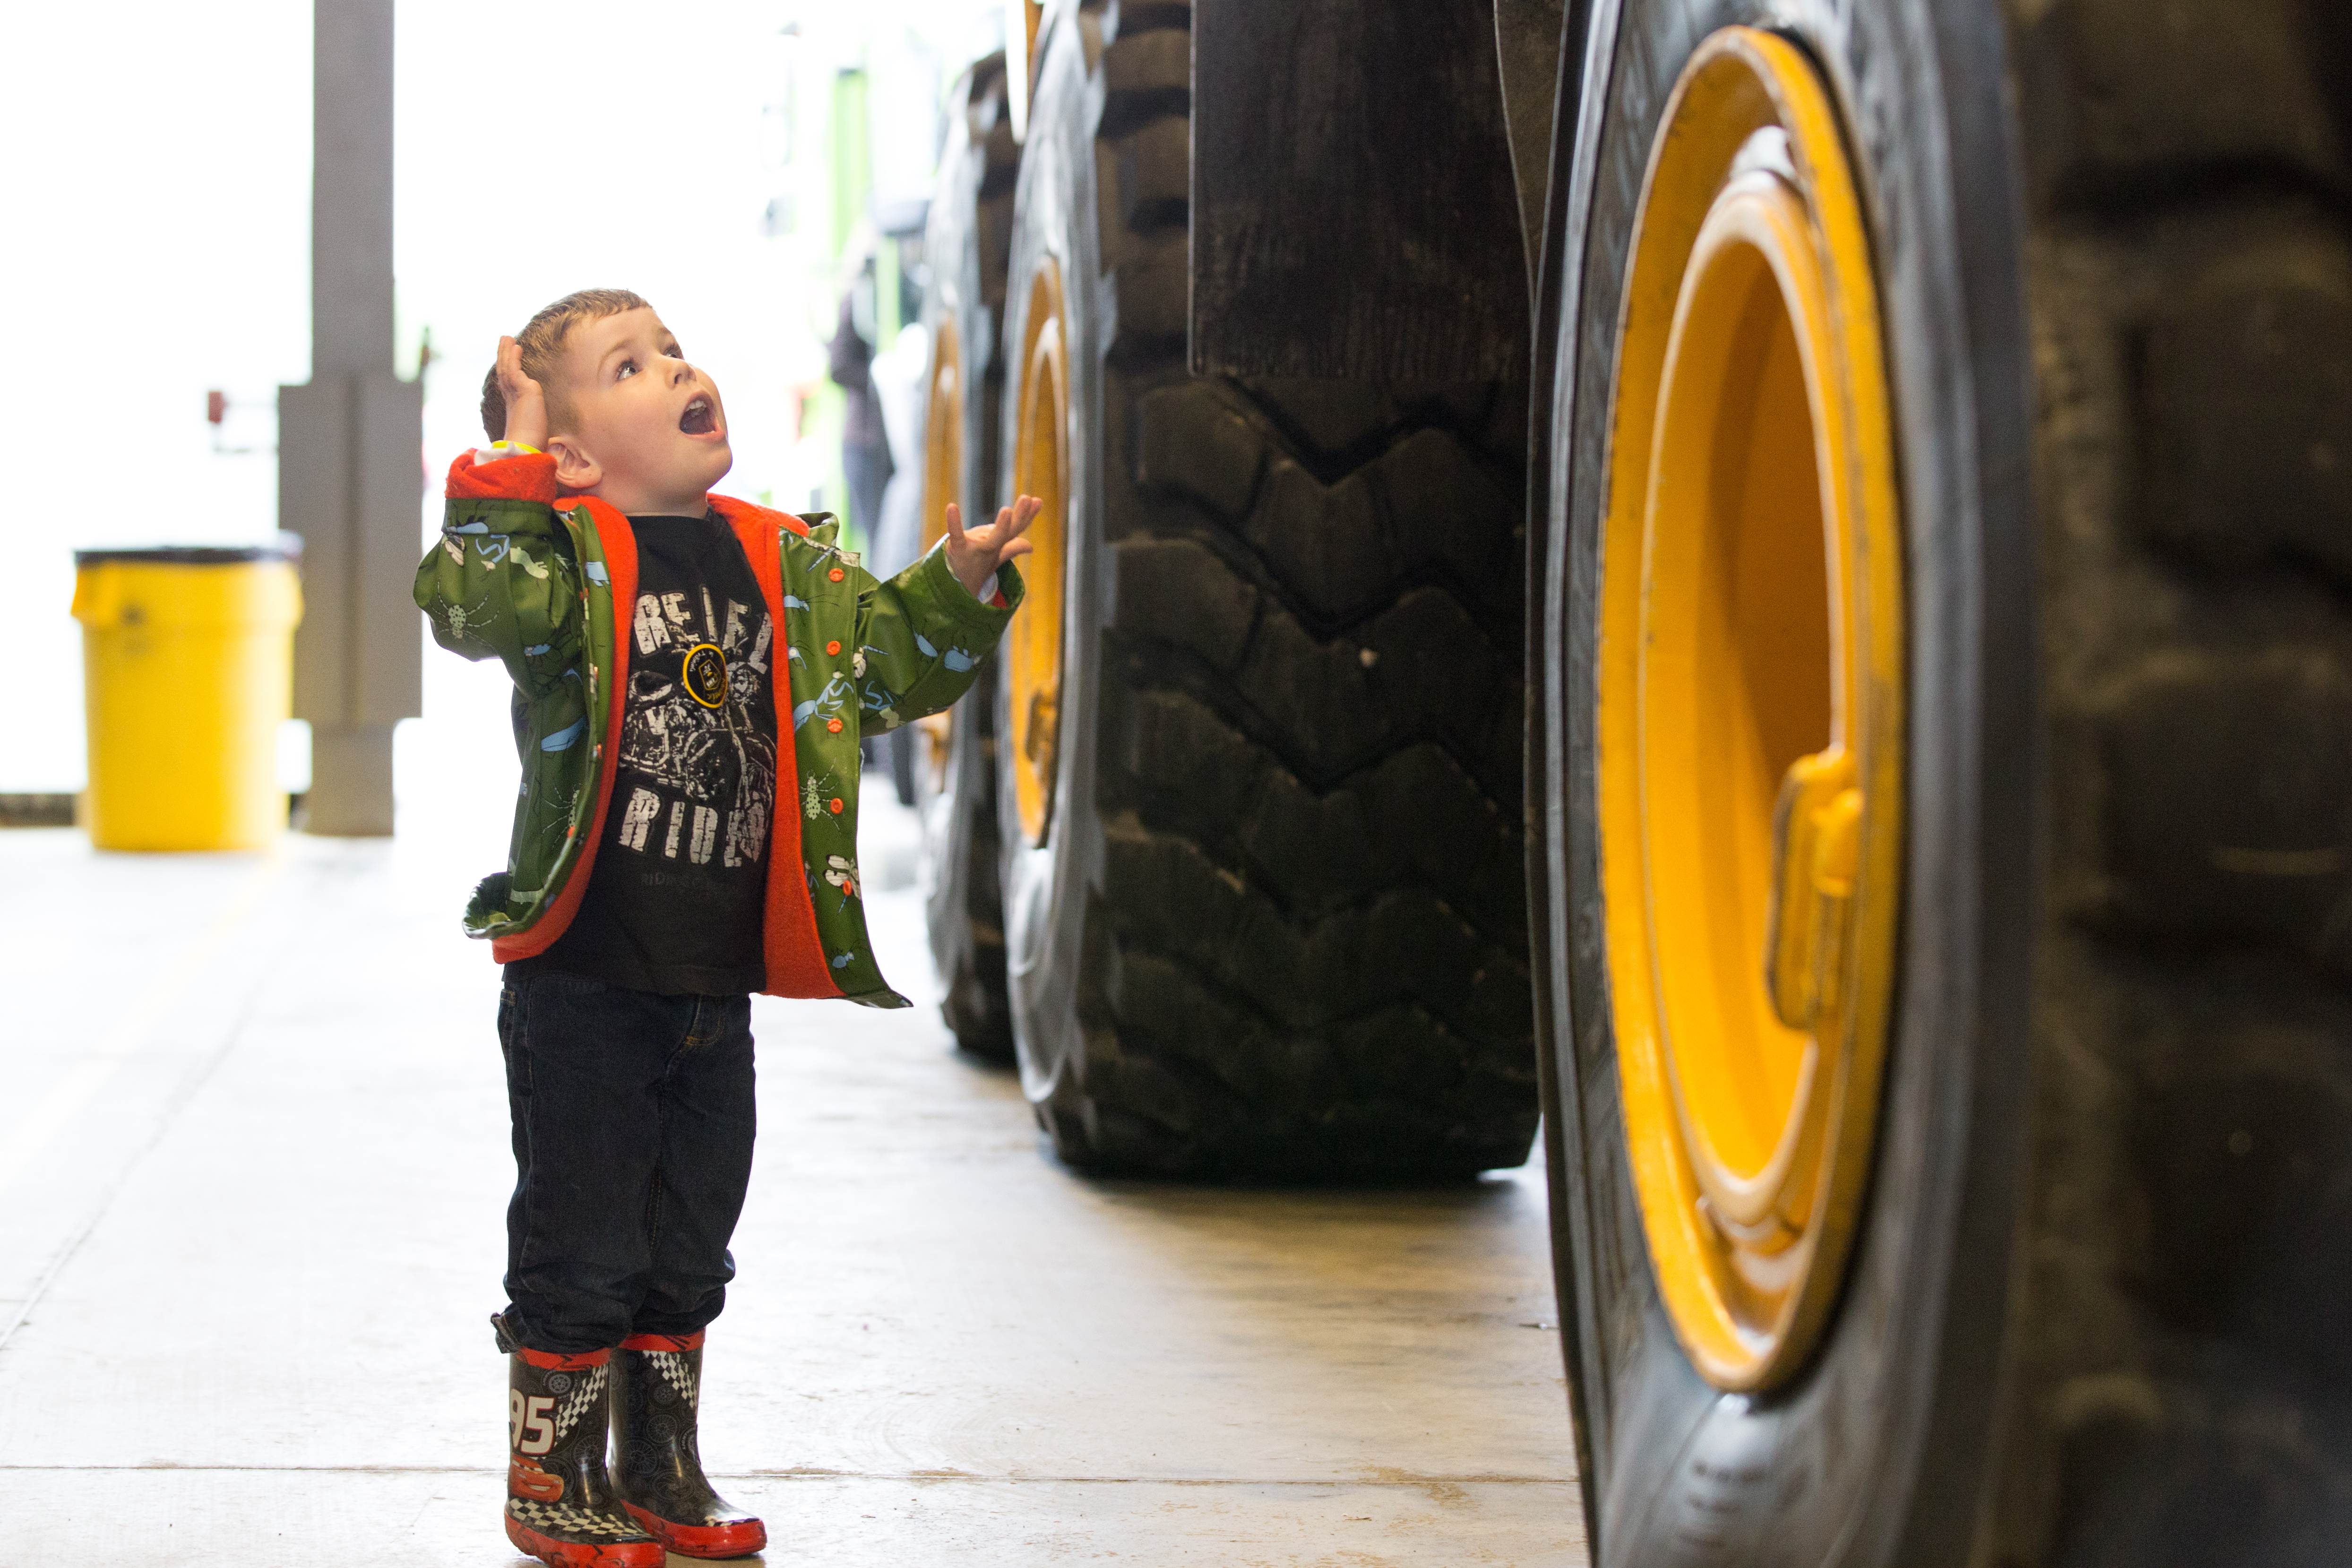 Child amazed by size of Tractor